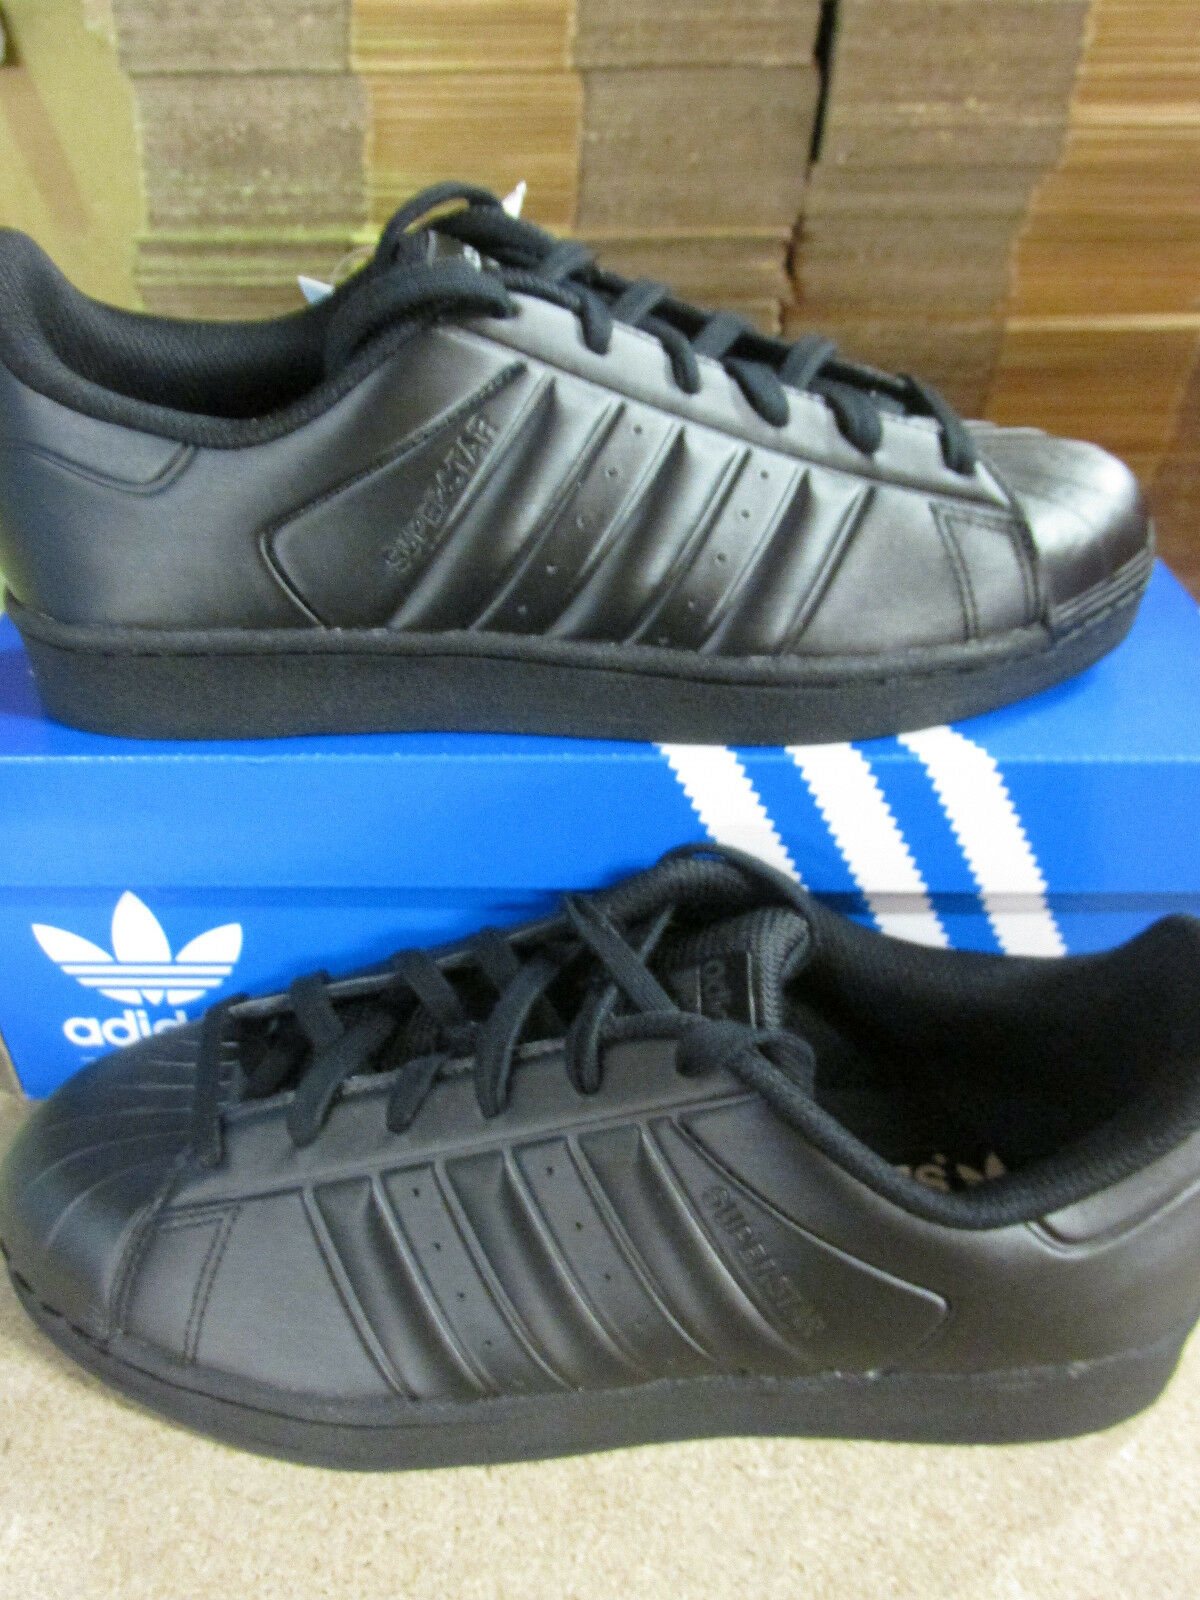 adidas originals superstar mens trainers BB1460 sneakers shoes New shoes for men and women, limited time discount